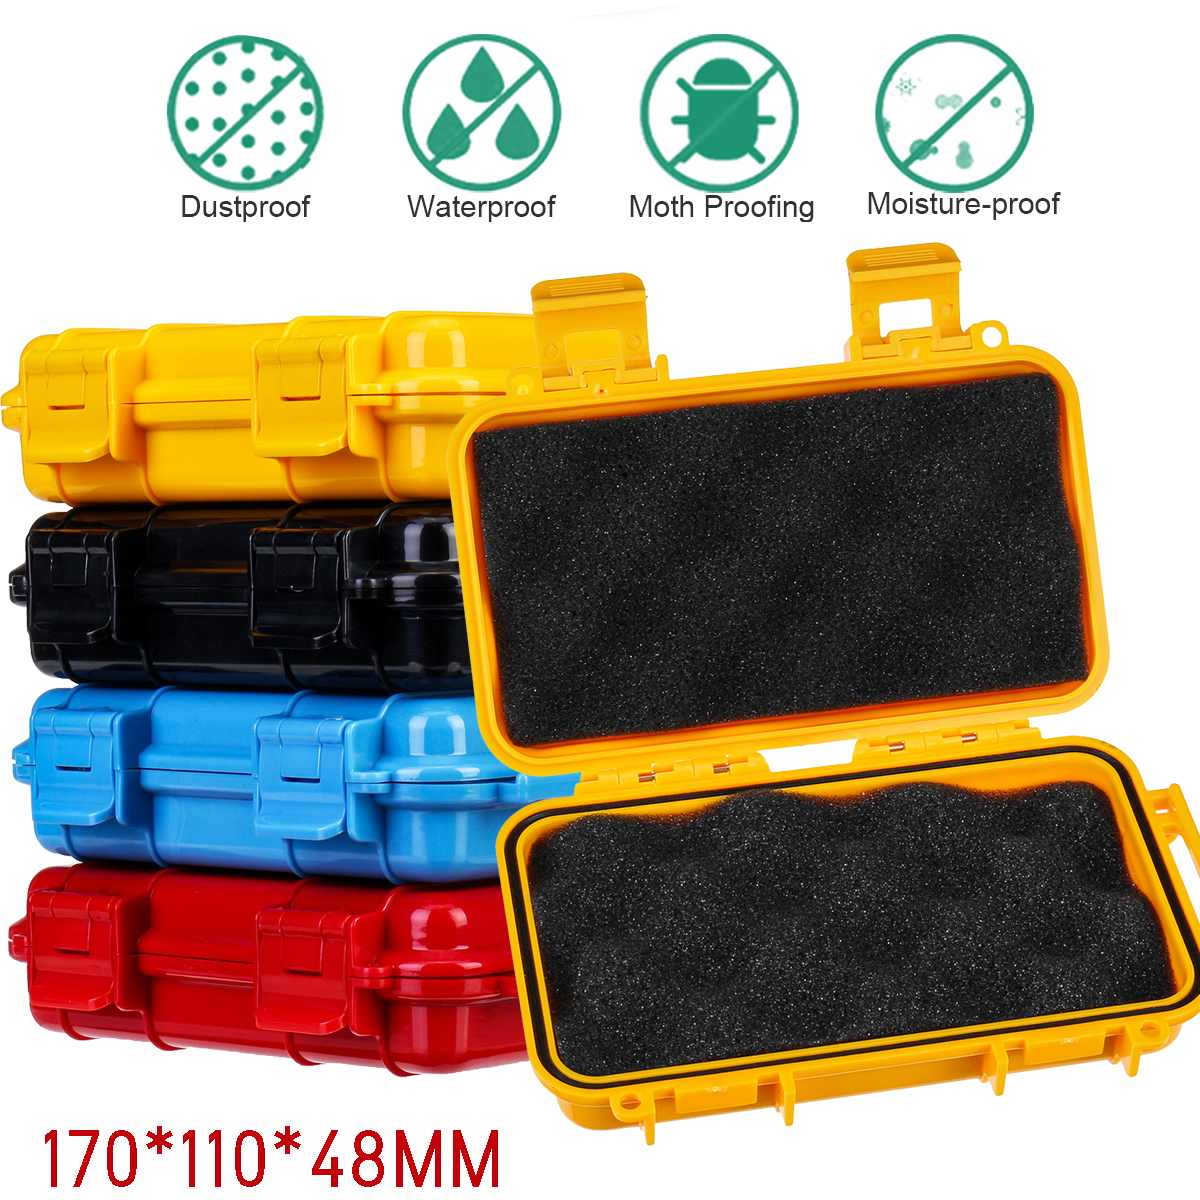 2 Size Outdoor Shockproof Waterproof Boxes Survival Airtight Case Holder Storage Matches Tools Travel Sealed Containers 4 Colors